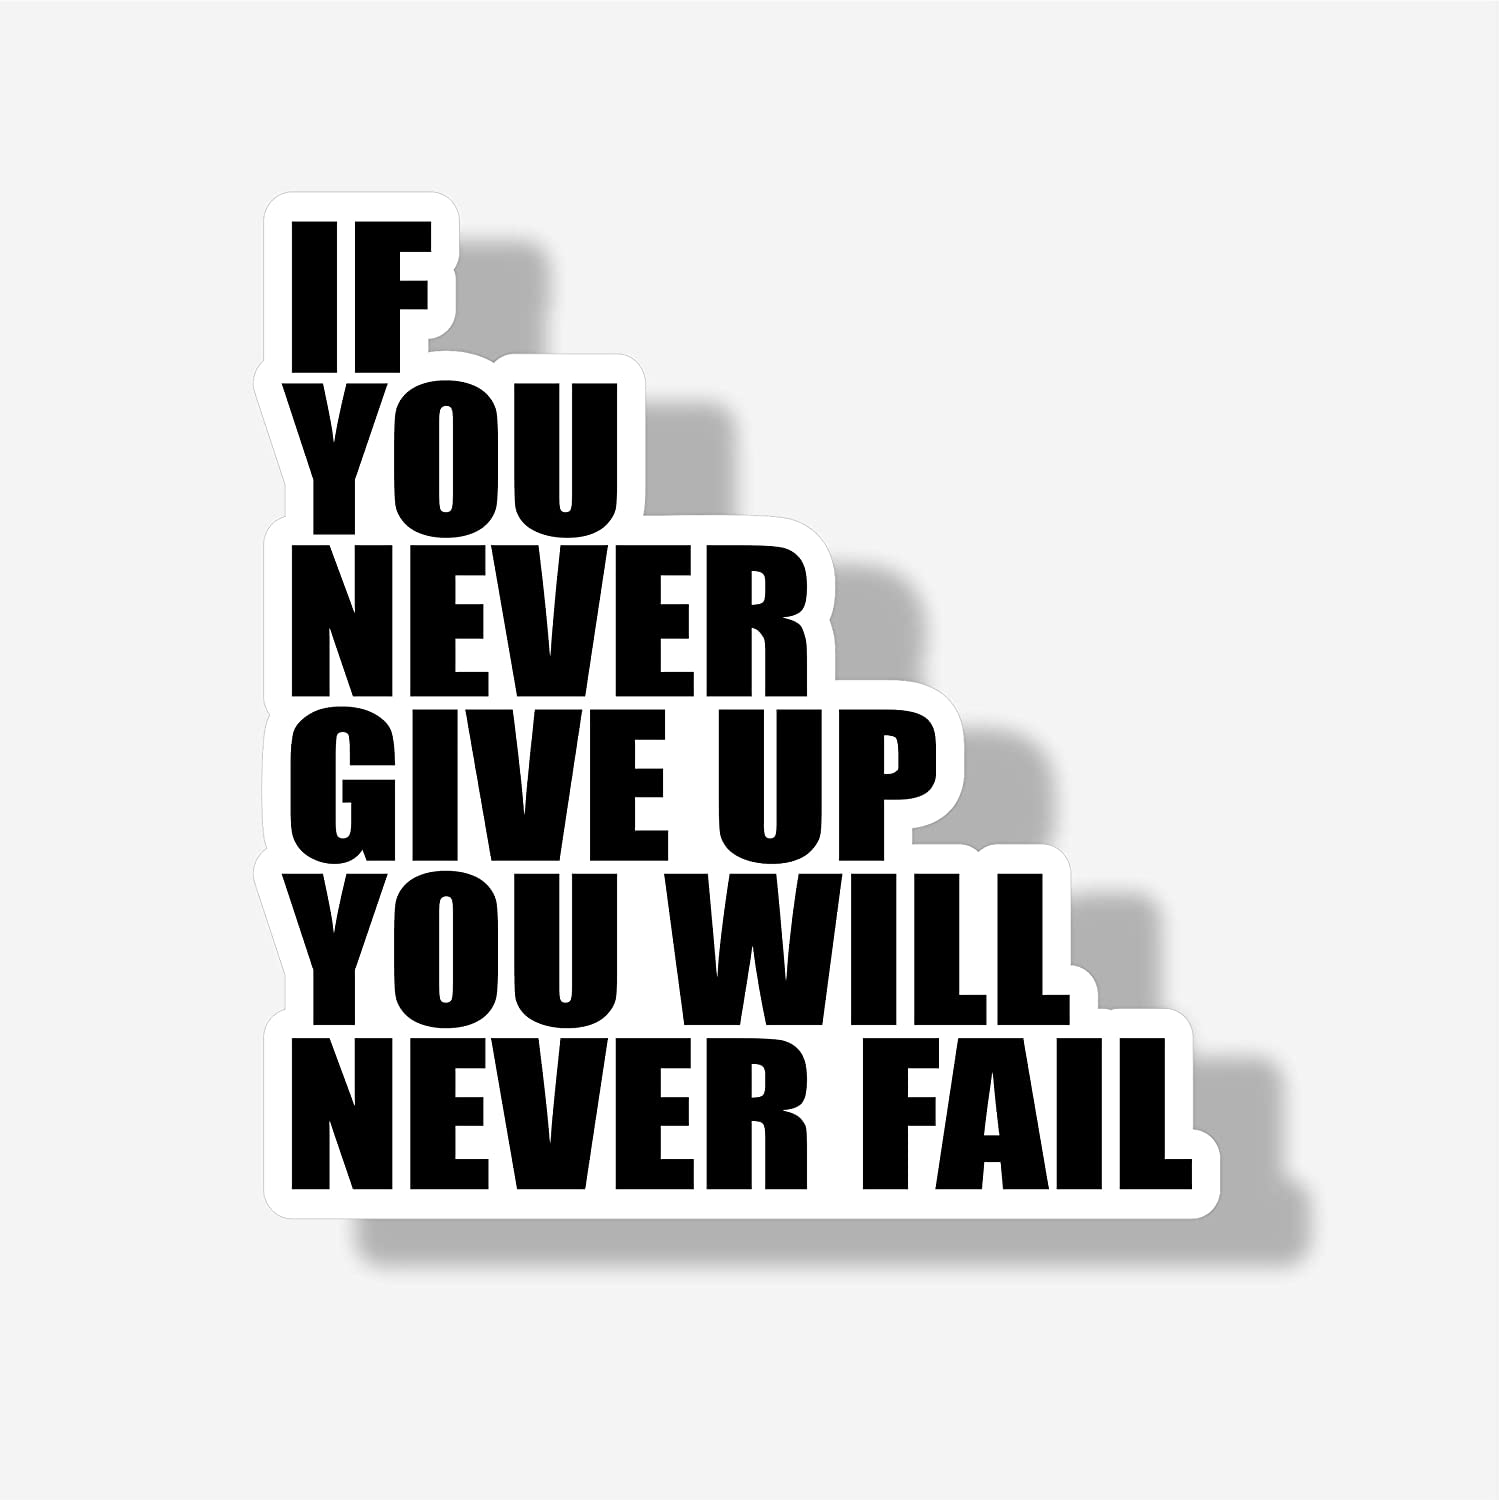 Never Give Up Decal Motivational Inspirational Quote for Laptop or Car